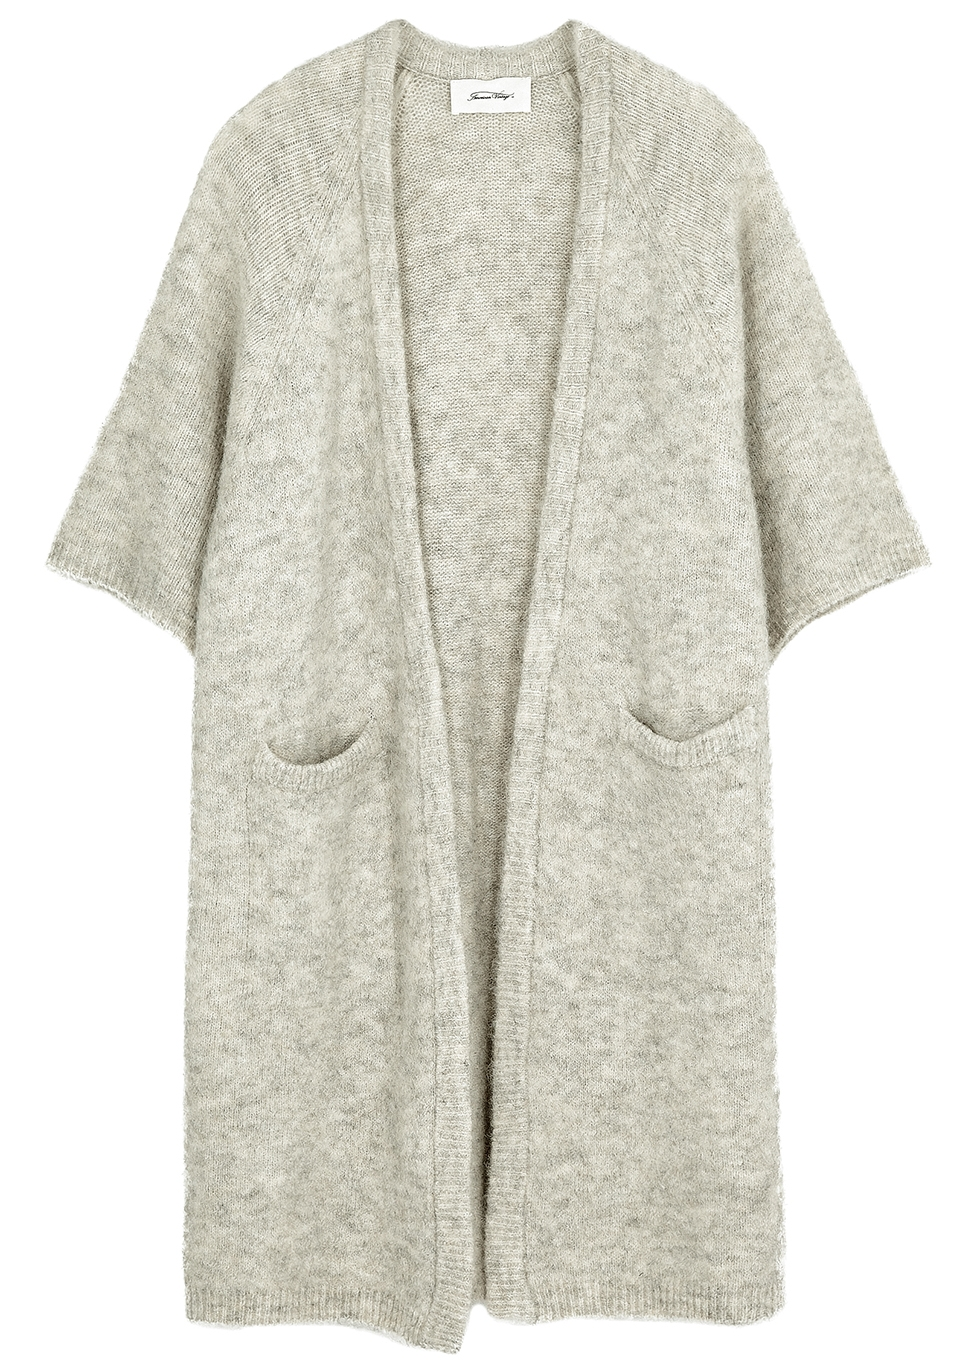 East cream knitted cardigan